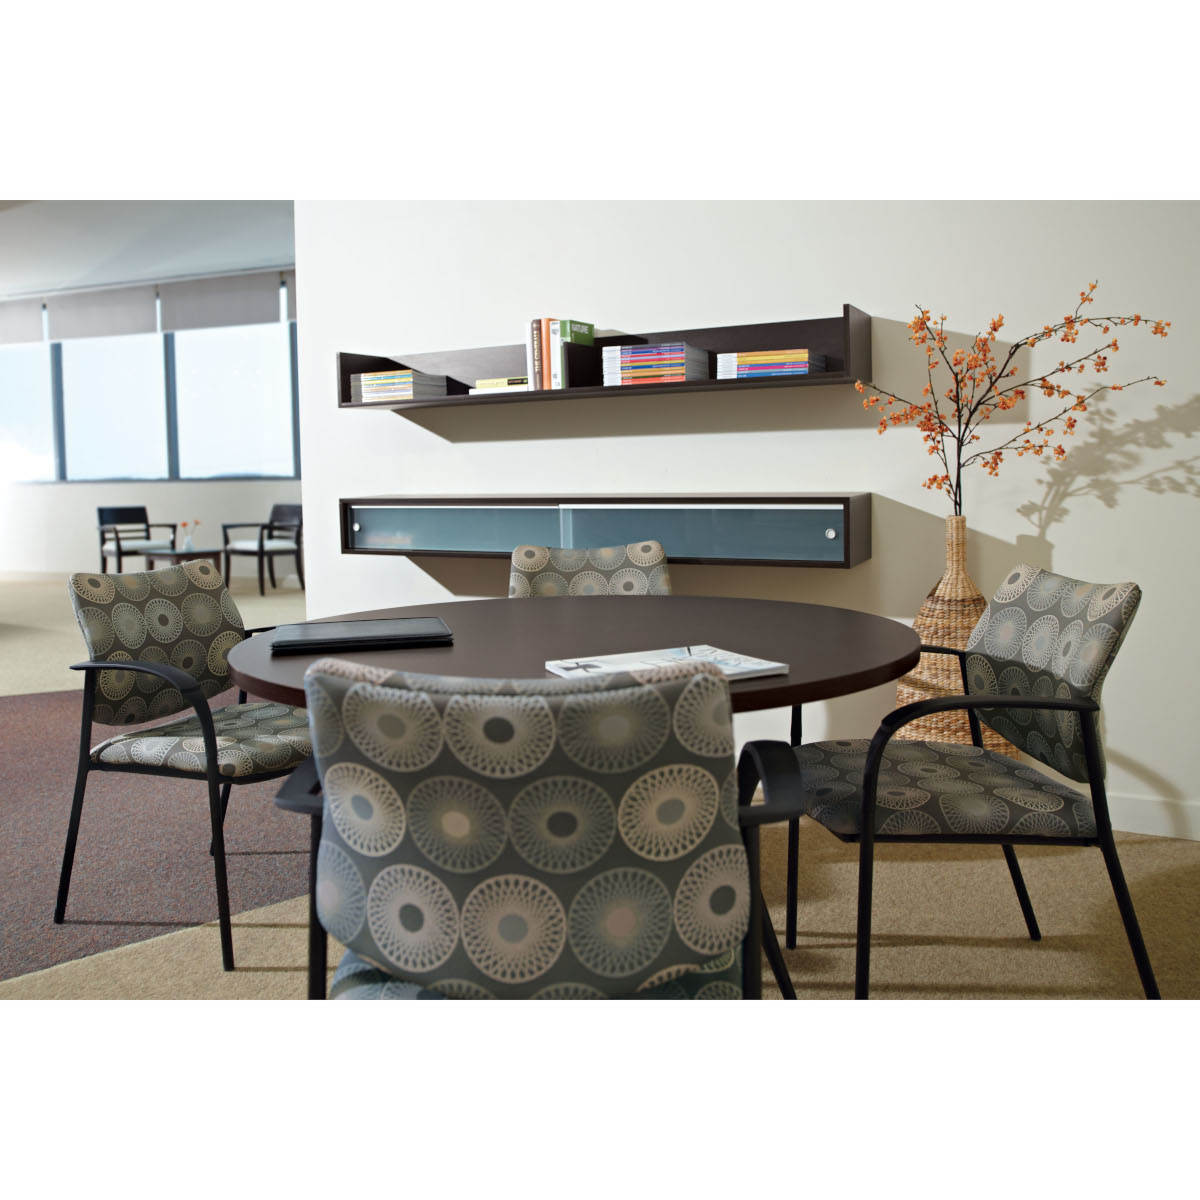 Global Alba Contemporary Conference Room Tables Better